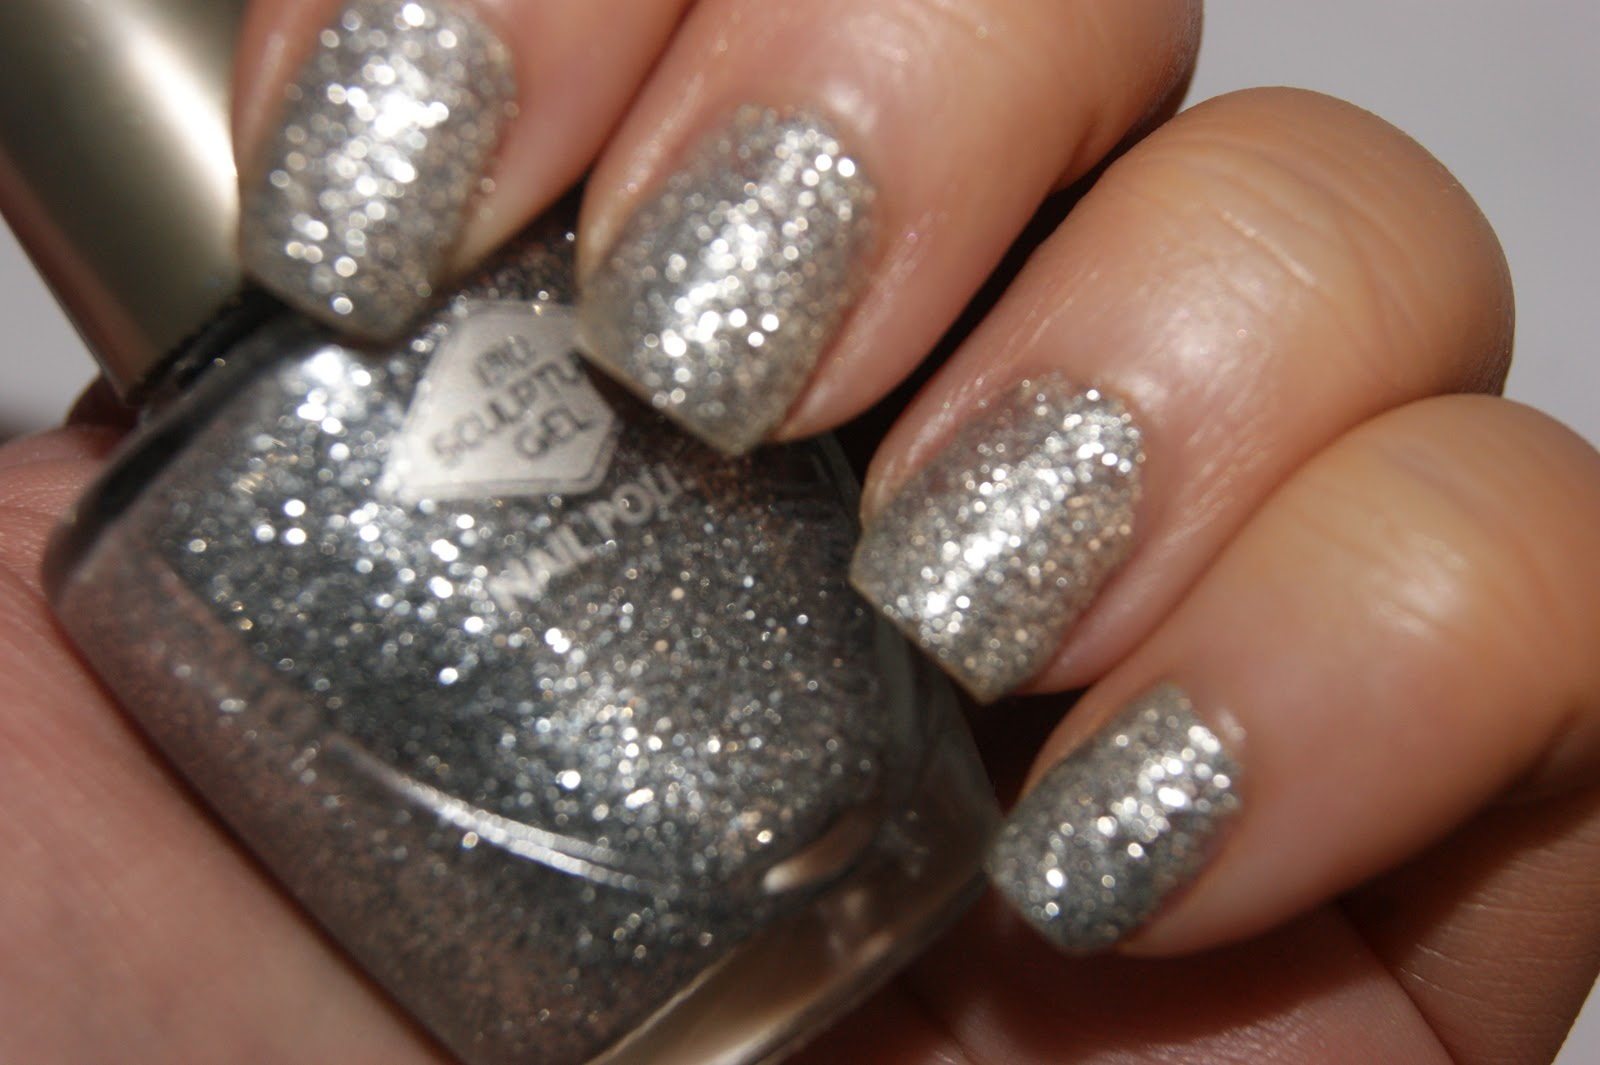 Bio Sculpture Gel Nail Polish in 106 Duchess - Review   The Sunday Girl